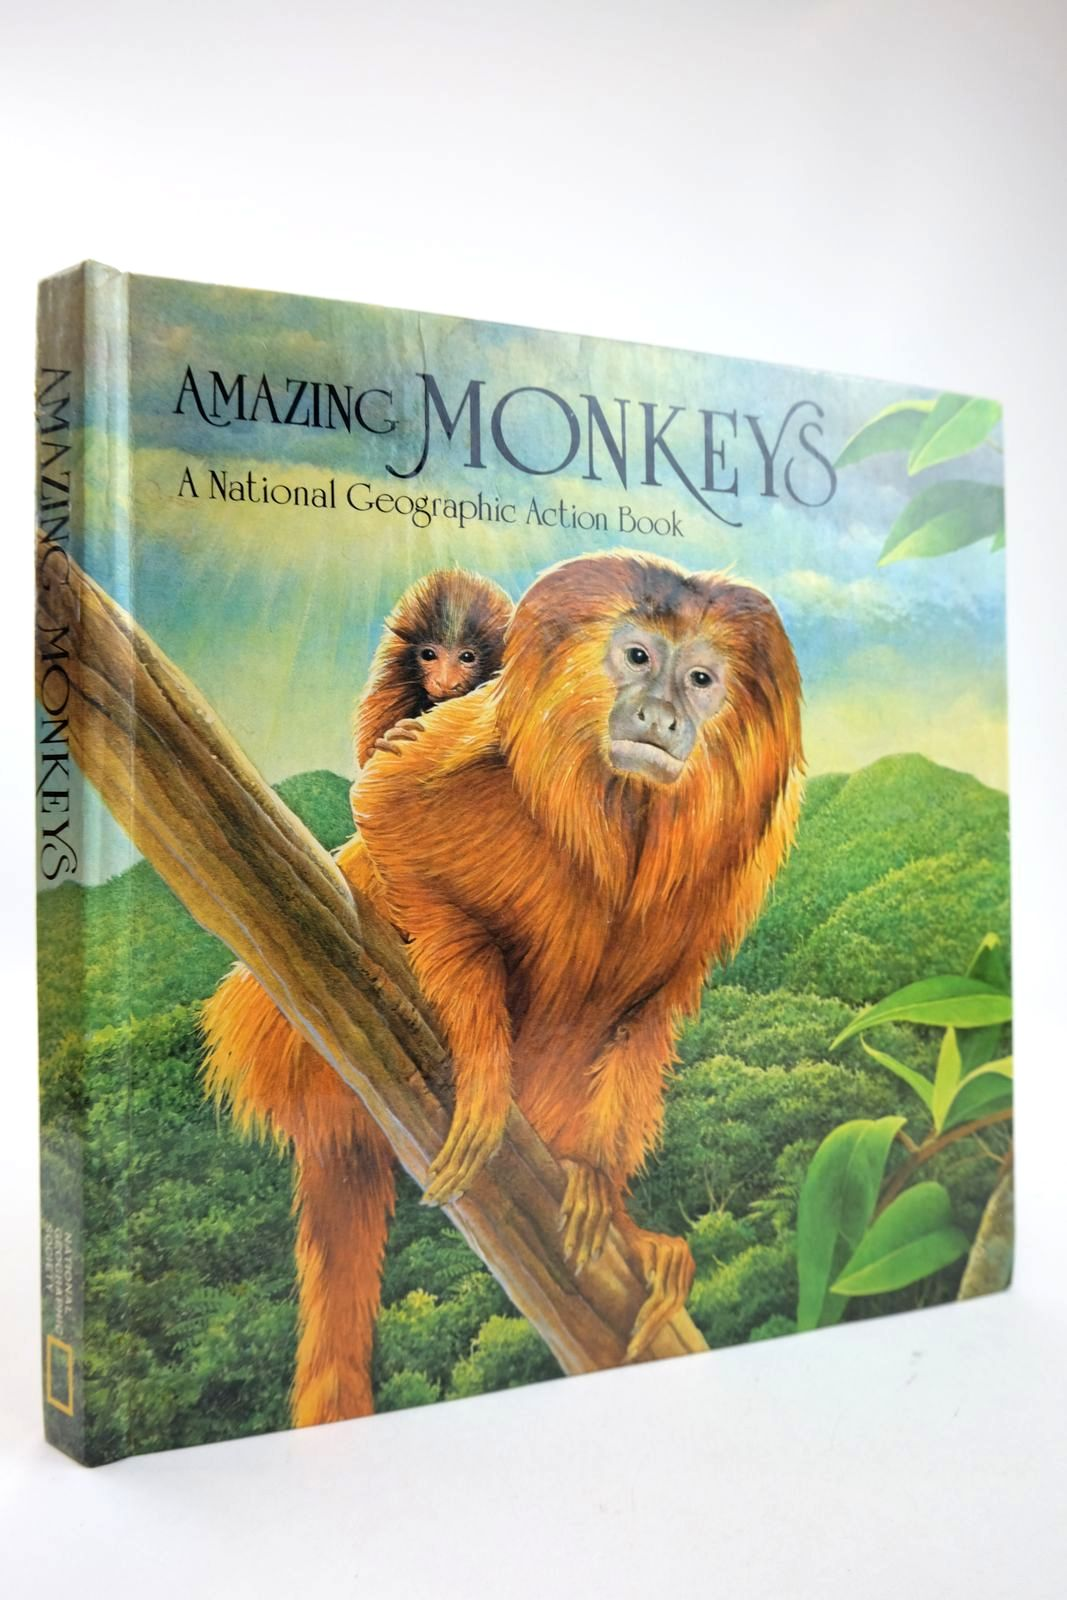 Photo of AMAZING MONKEYS illustrated by Hynes, Robert published by National Geographic Society (STOCK CODE: 2132525)  for sale by Stella & Rose's Books